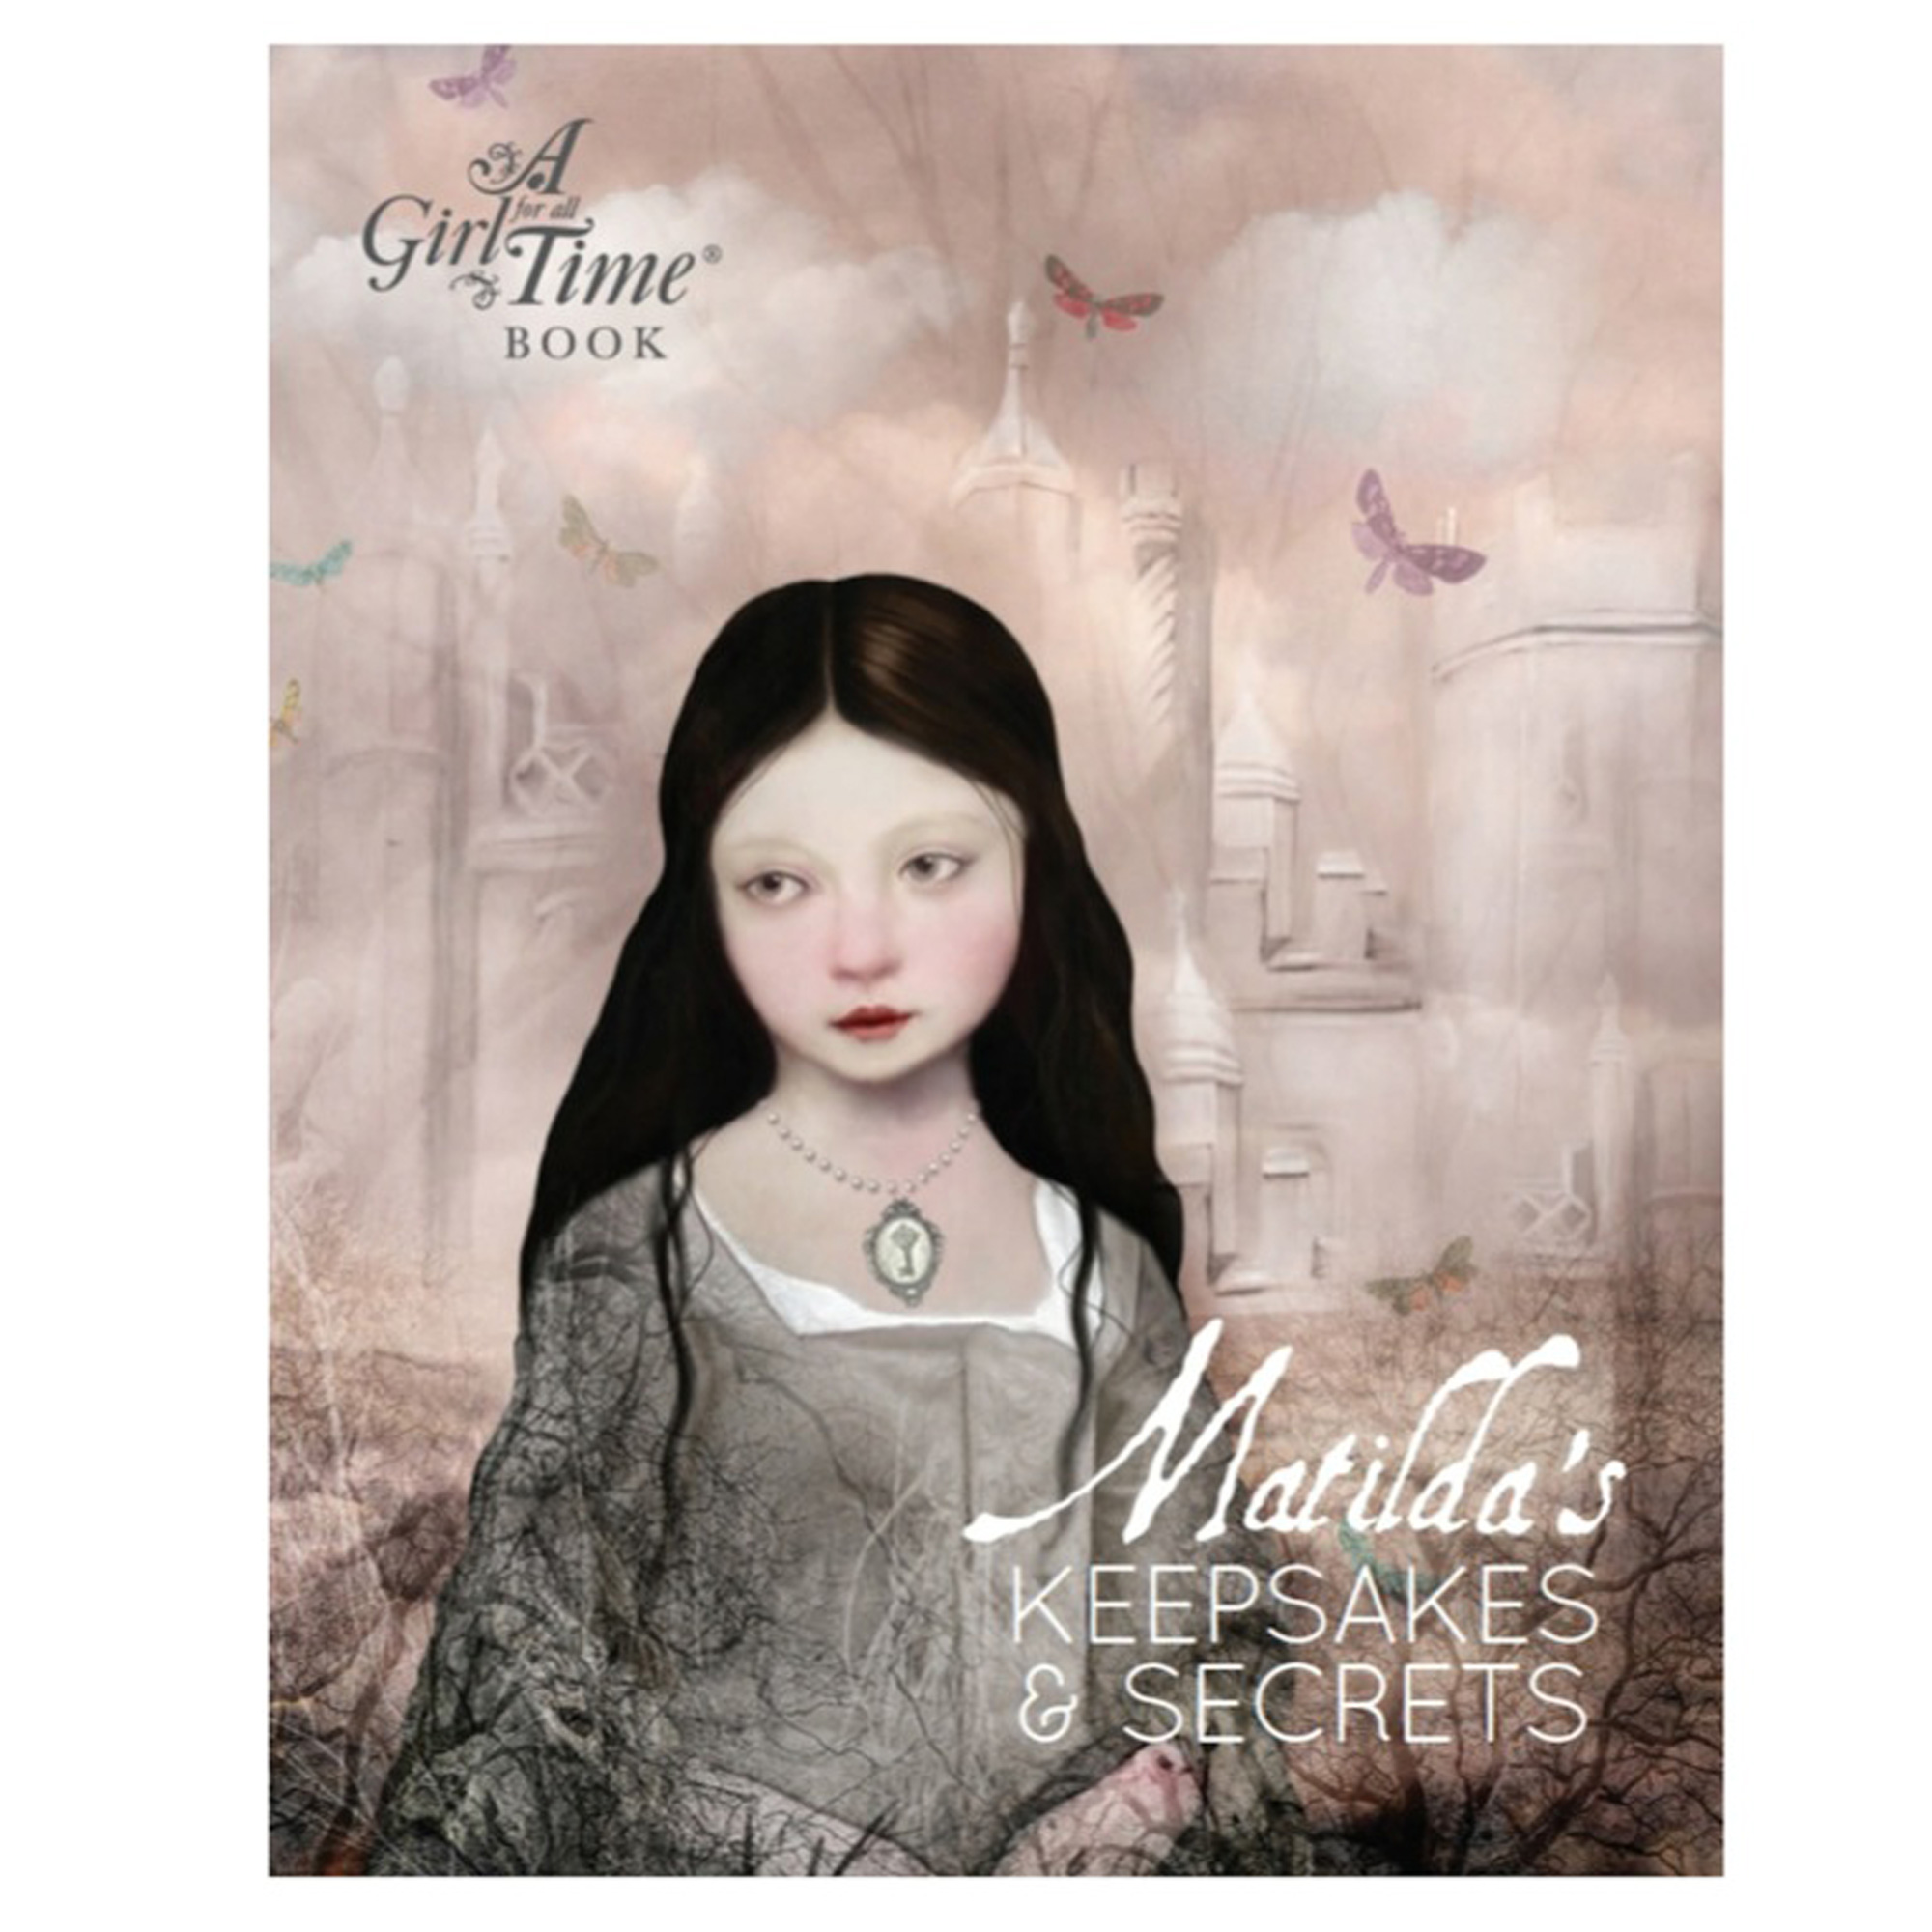 Image of Matilda's Keepsakes And Secrets' Activity Book